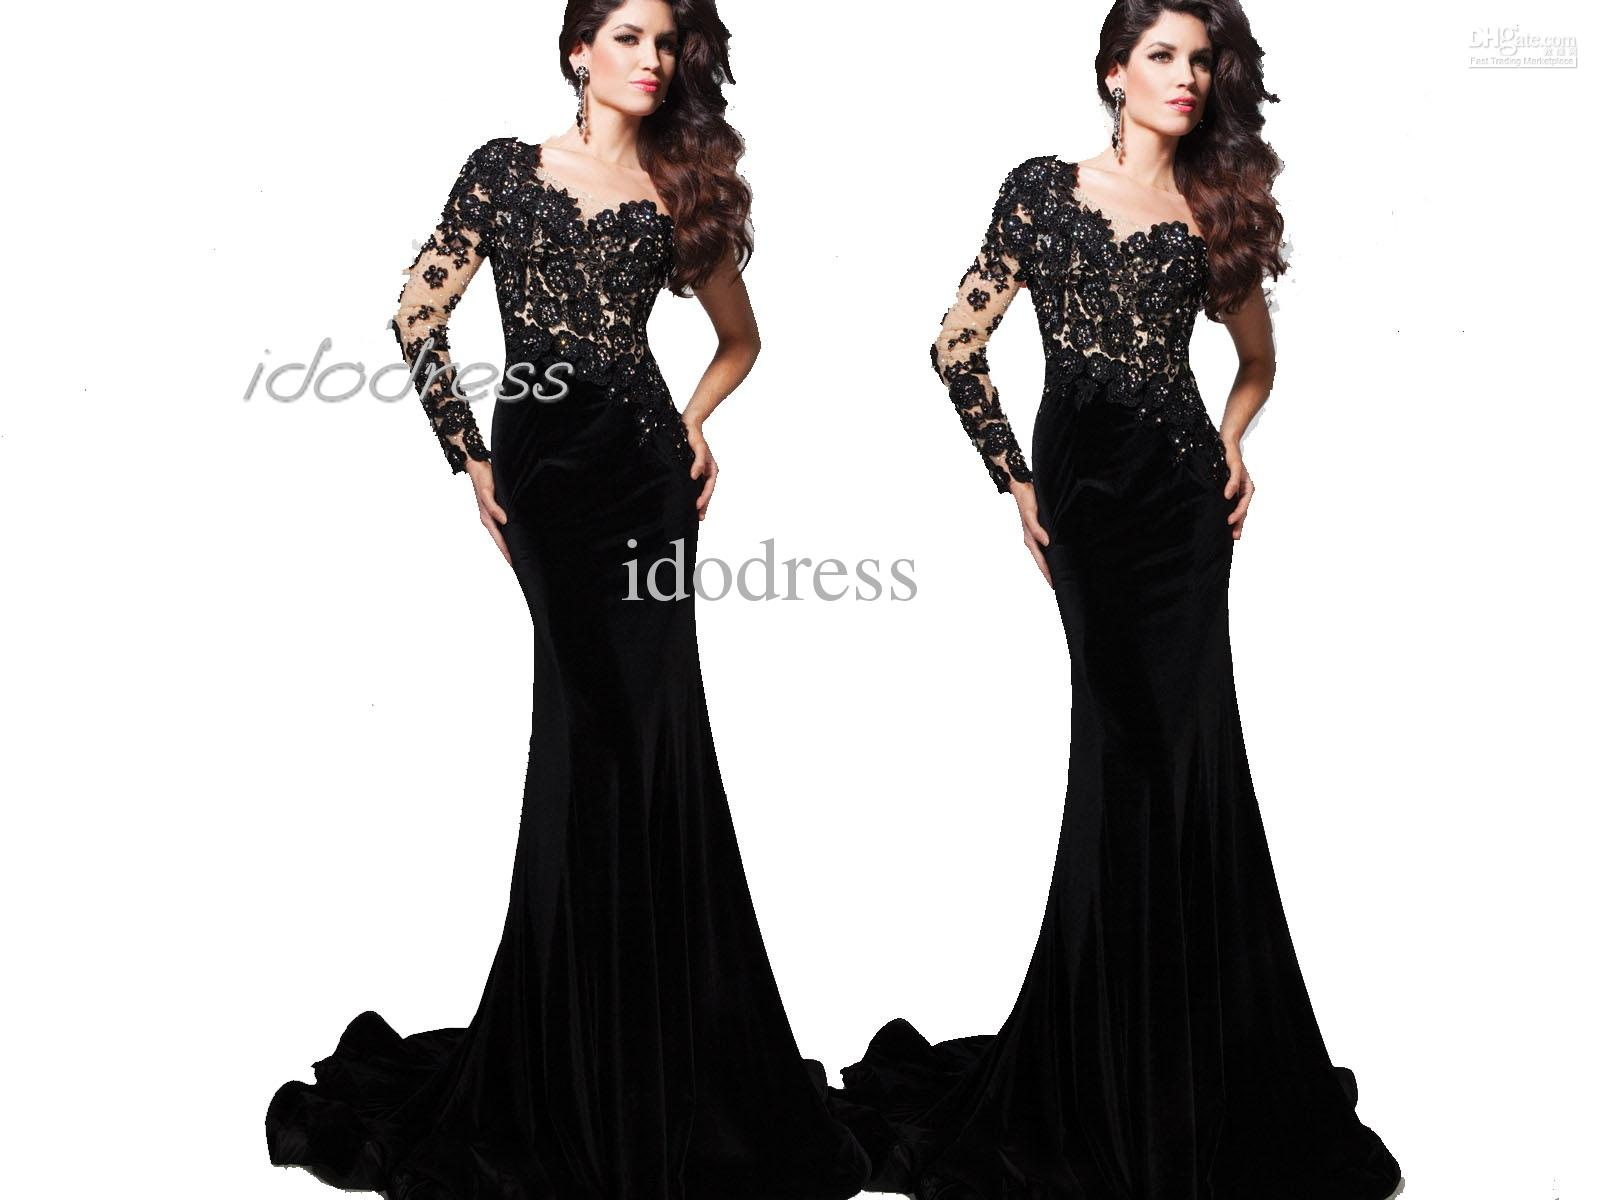 One Shoulder Black Lace Prom Dress 2013 New Fashion Sheath Satin ...